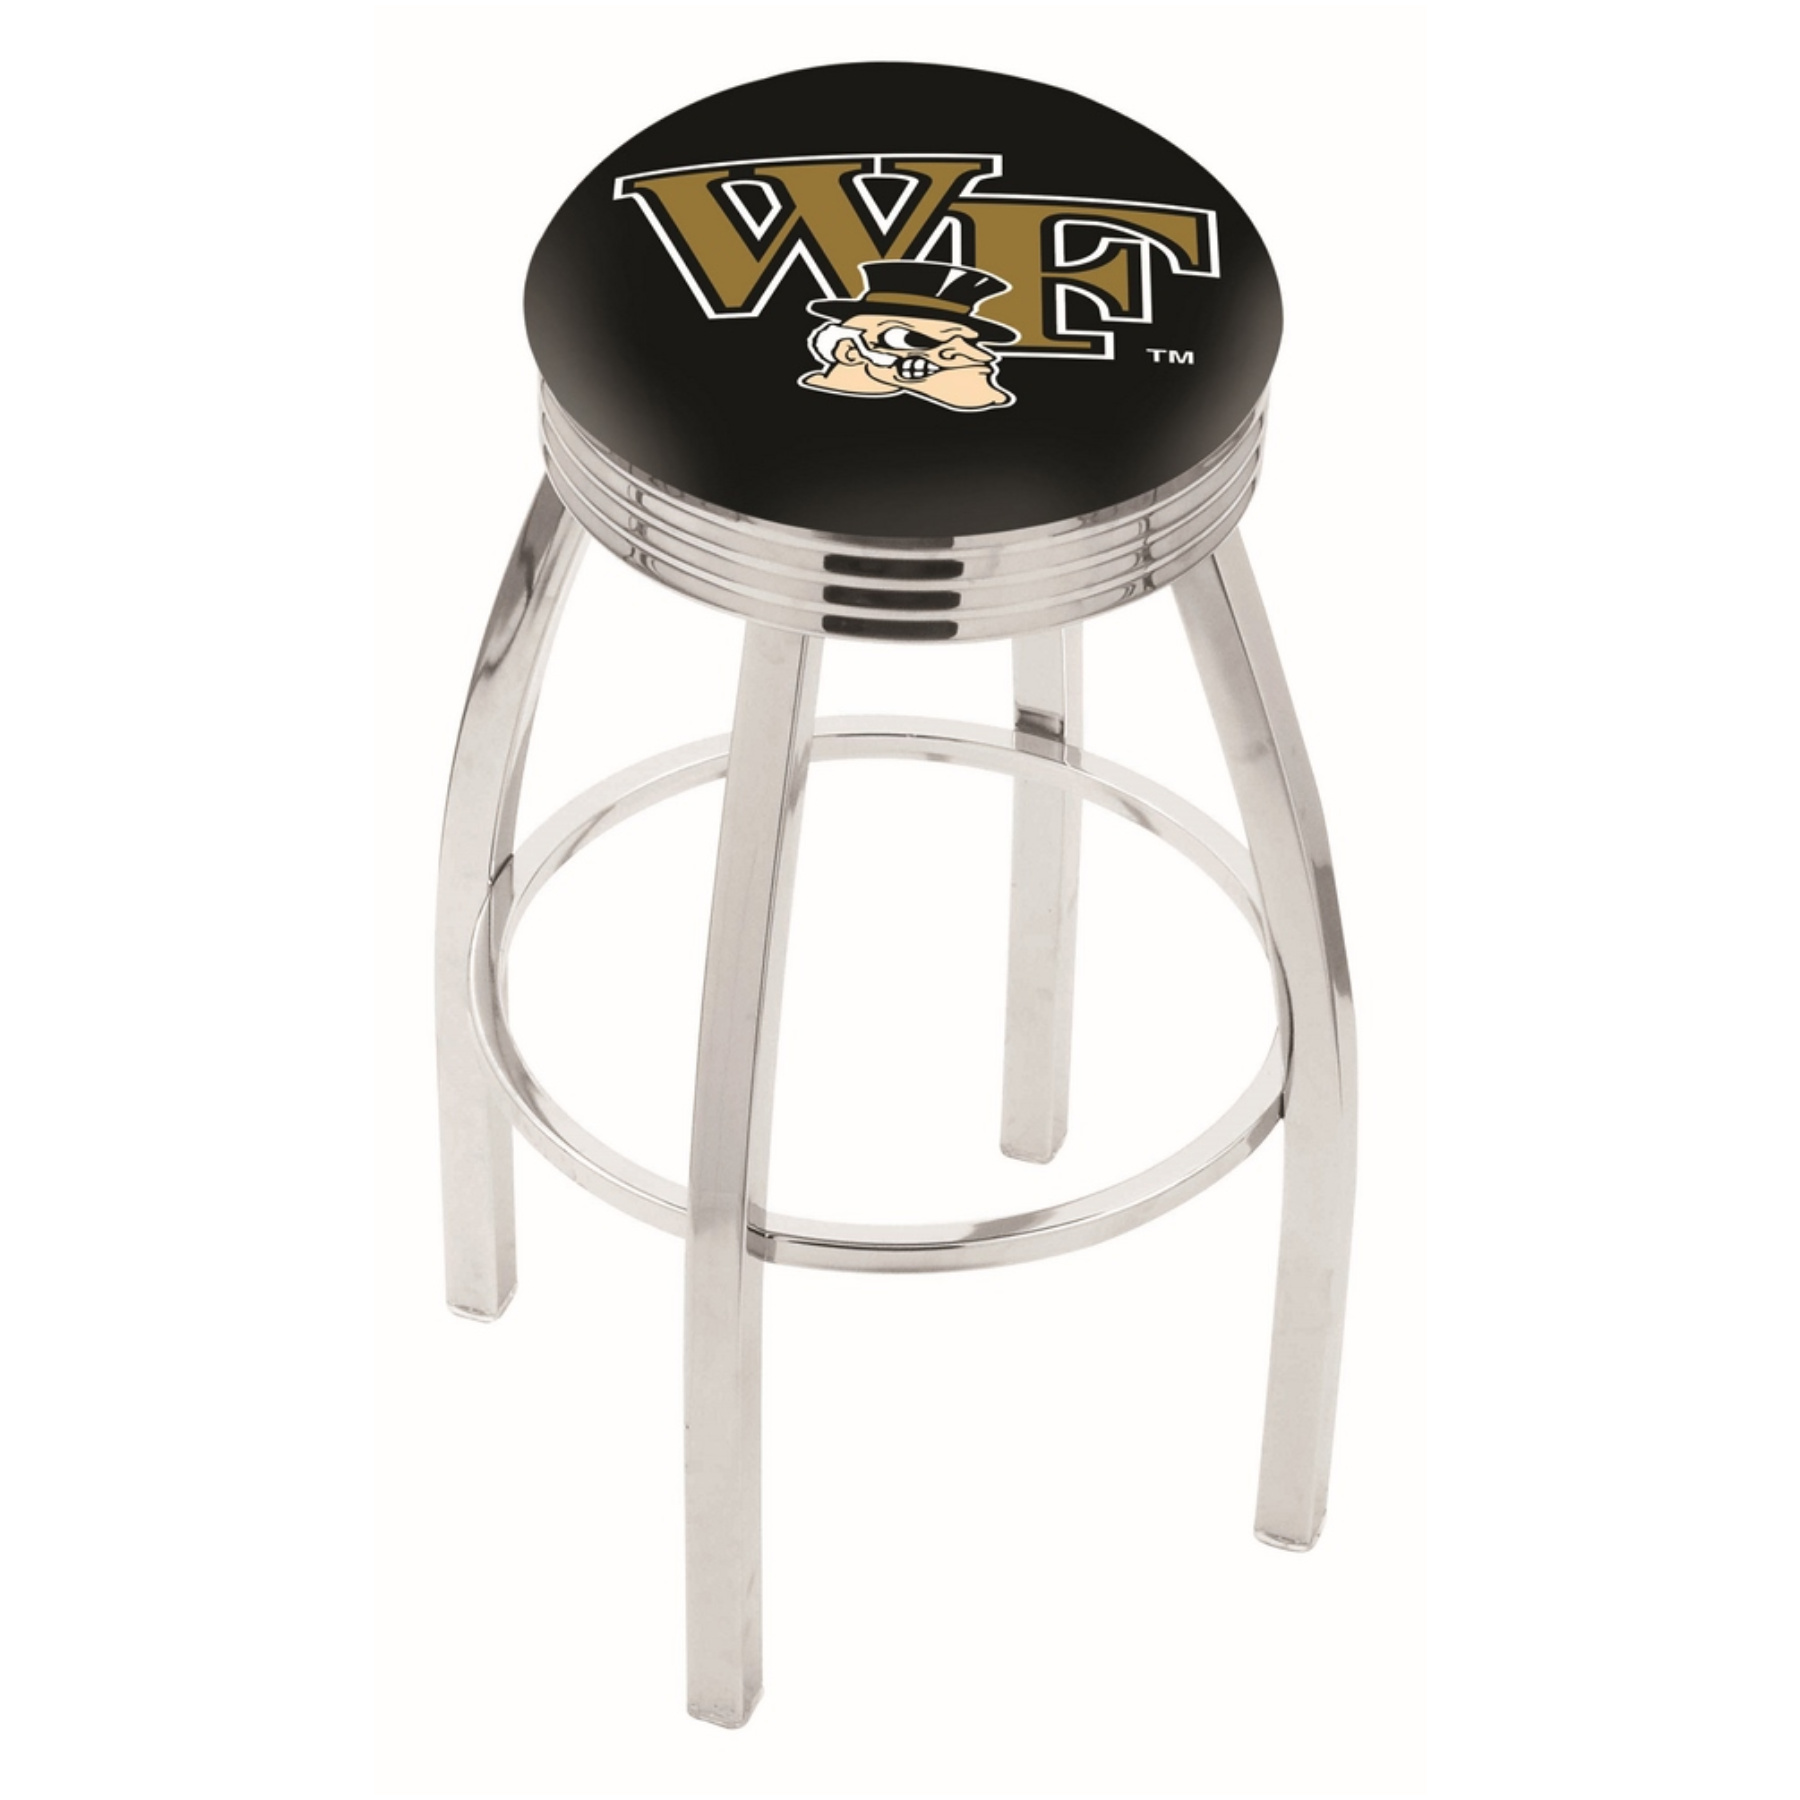 Wake Forest Demon Deacons L8c3c Bar Stool By Hbs L8C3CWakeFr